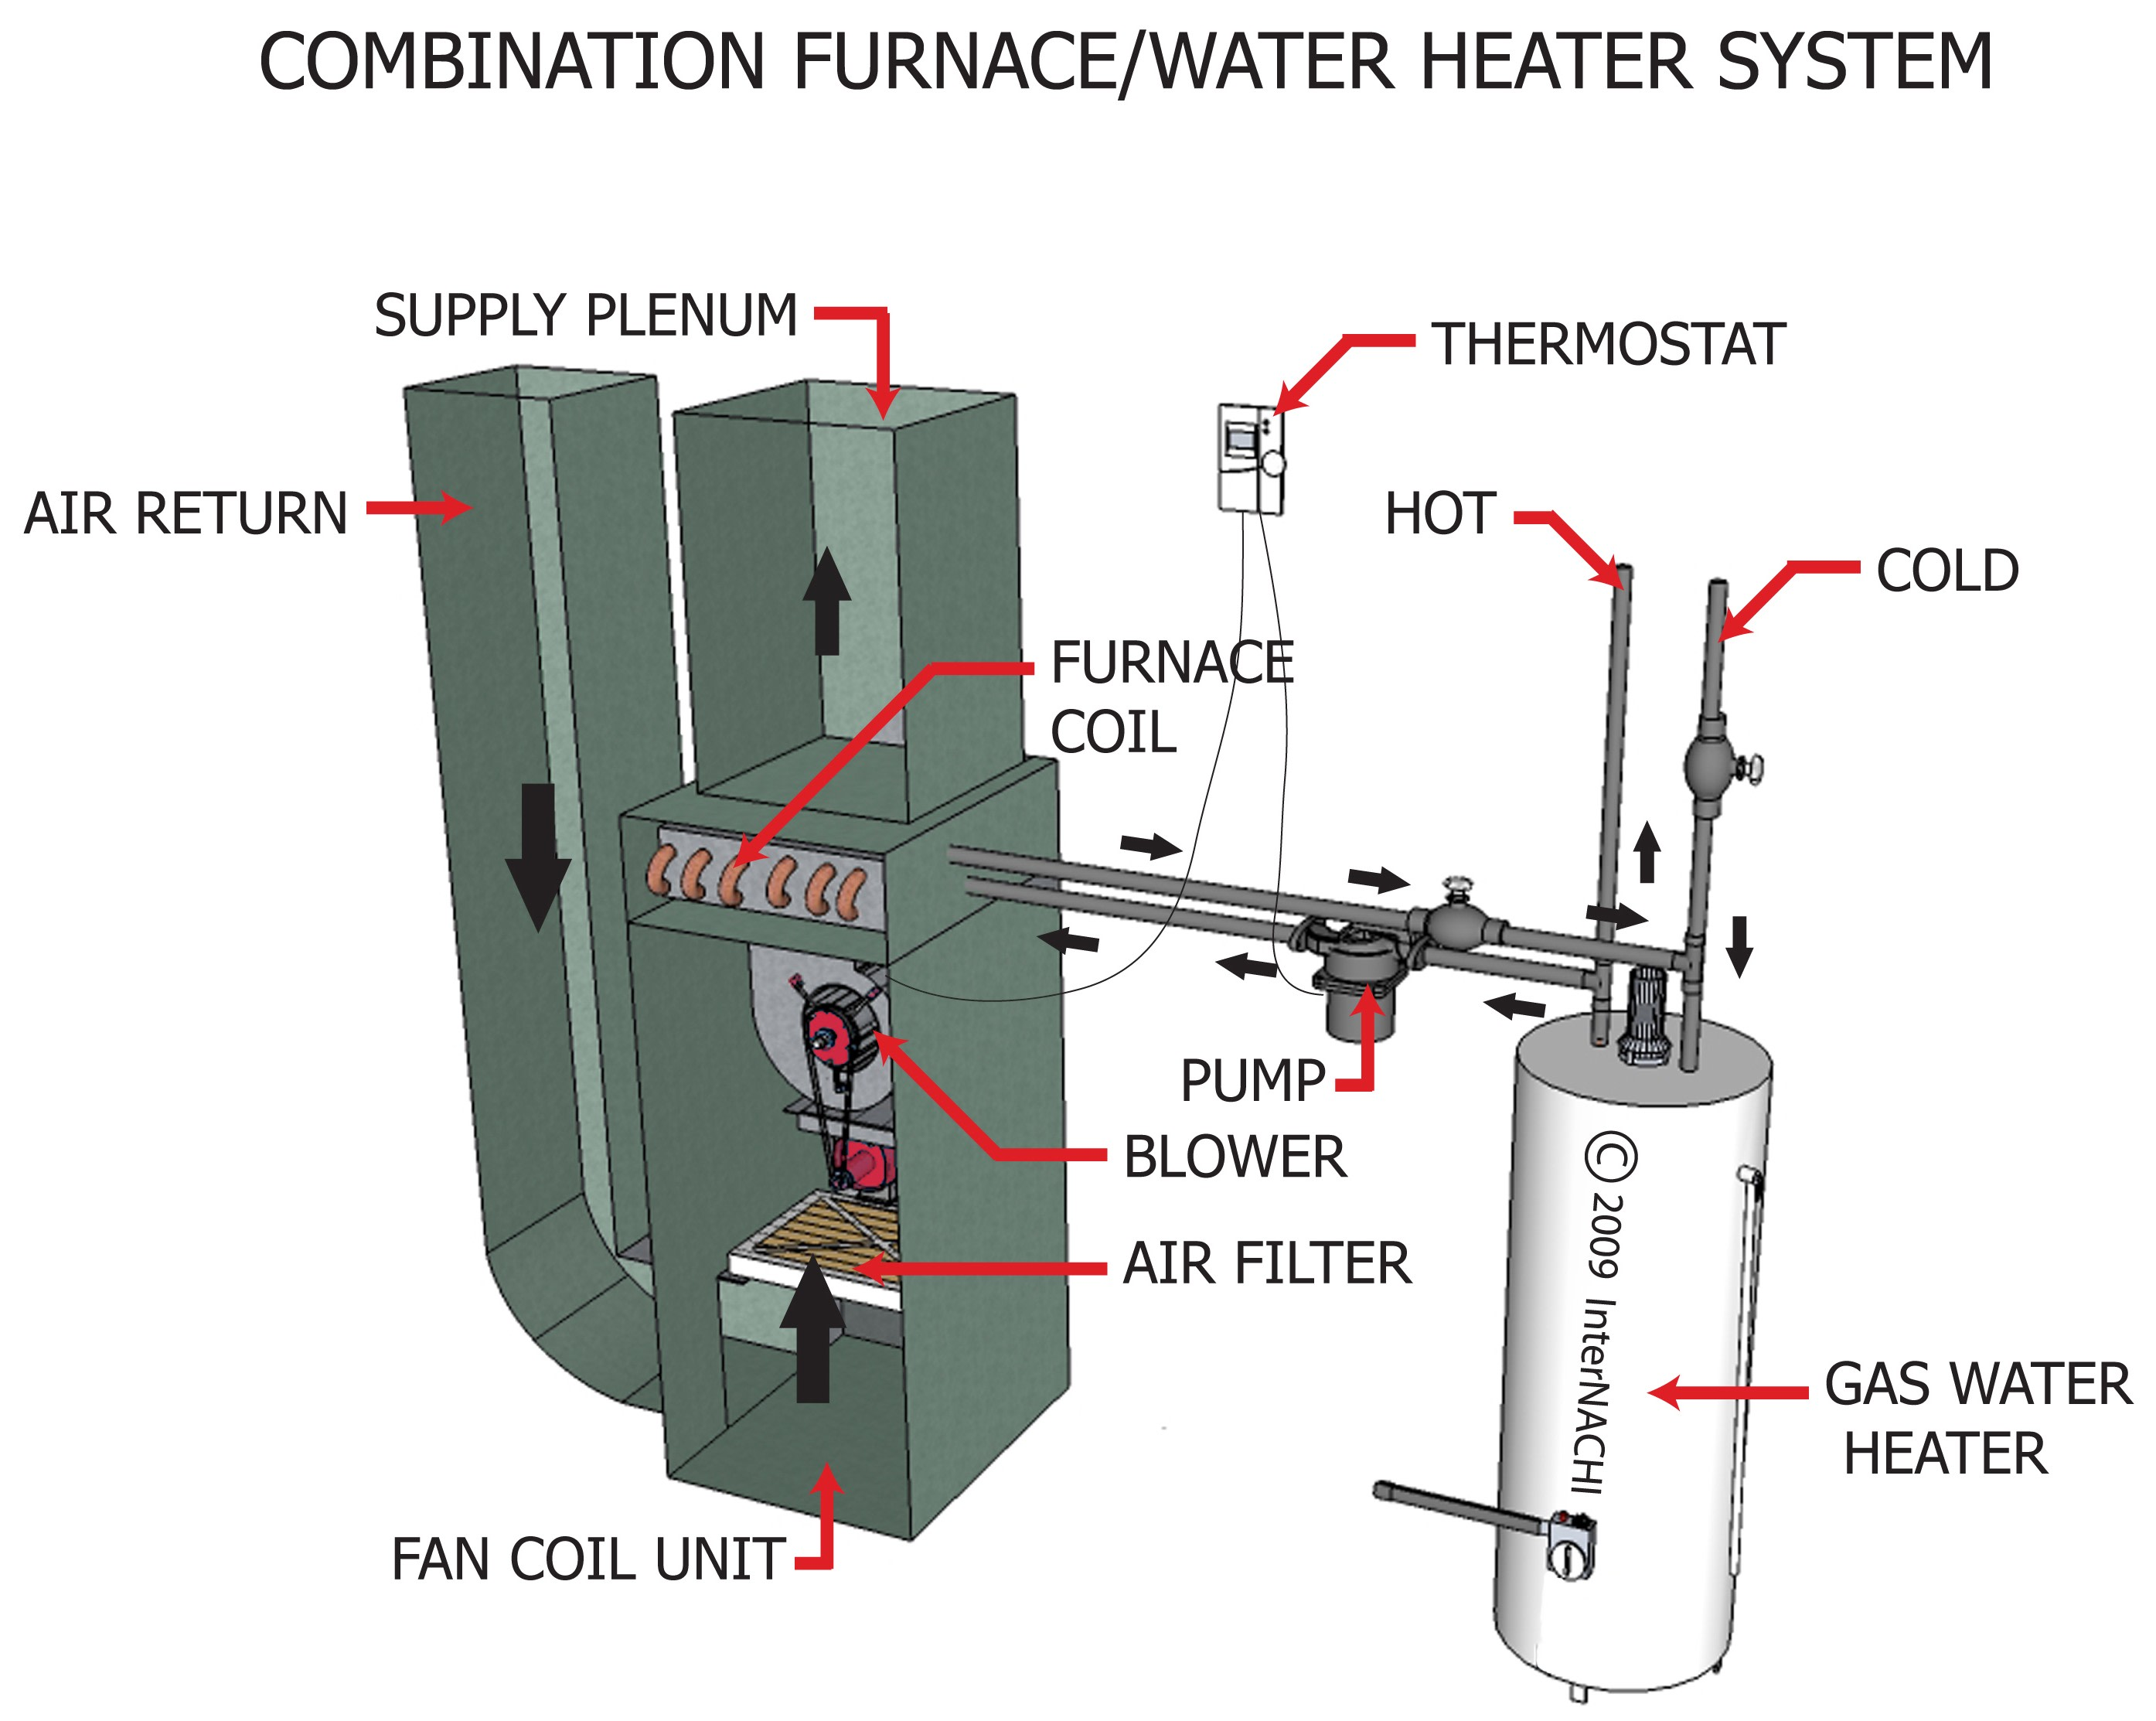 Combination furnace & water heater system.